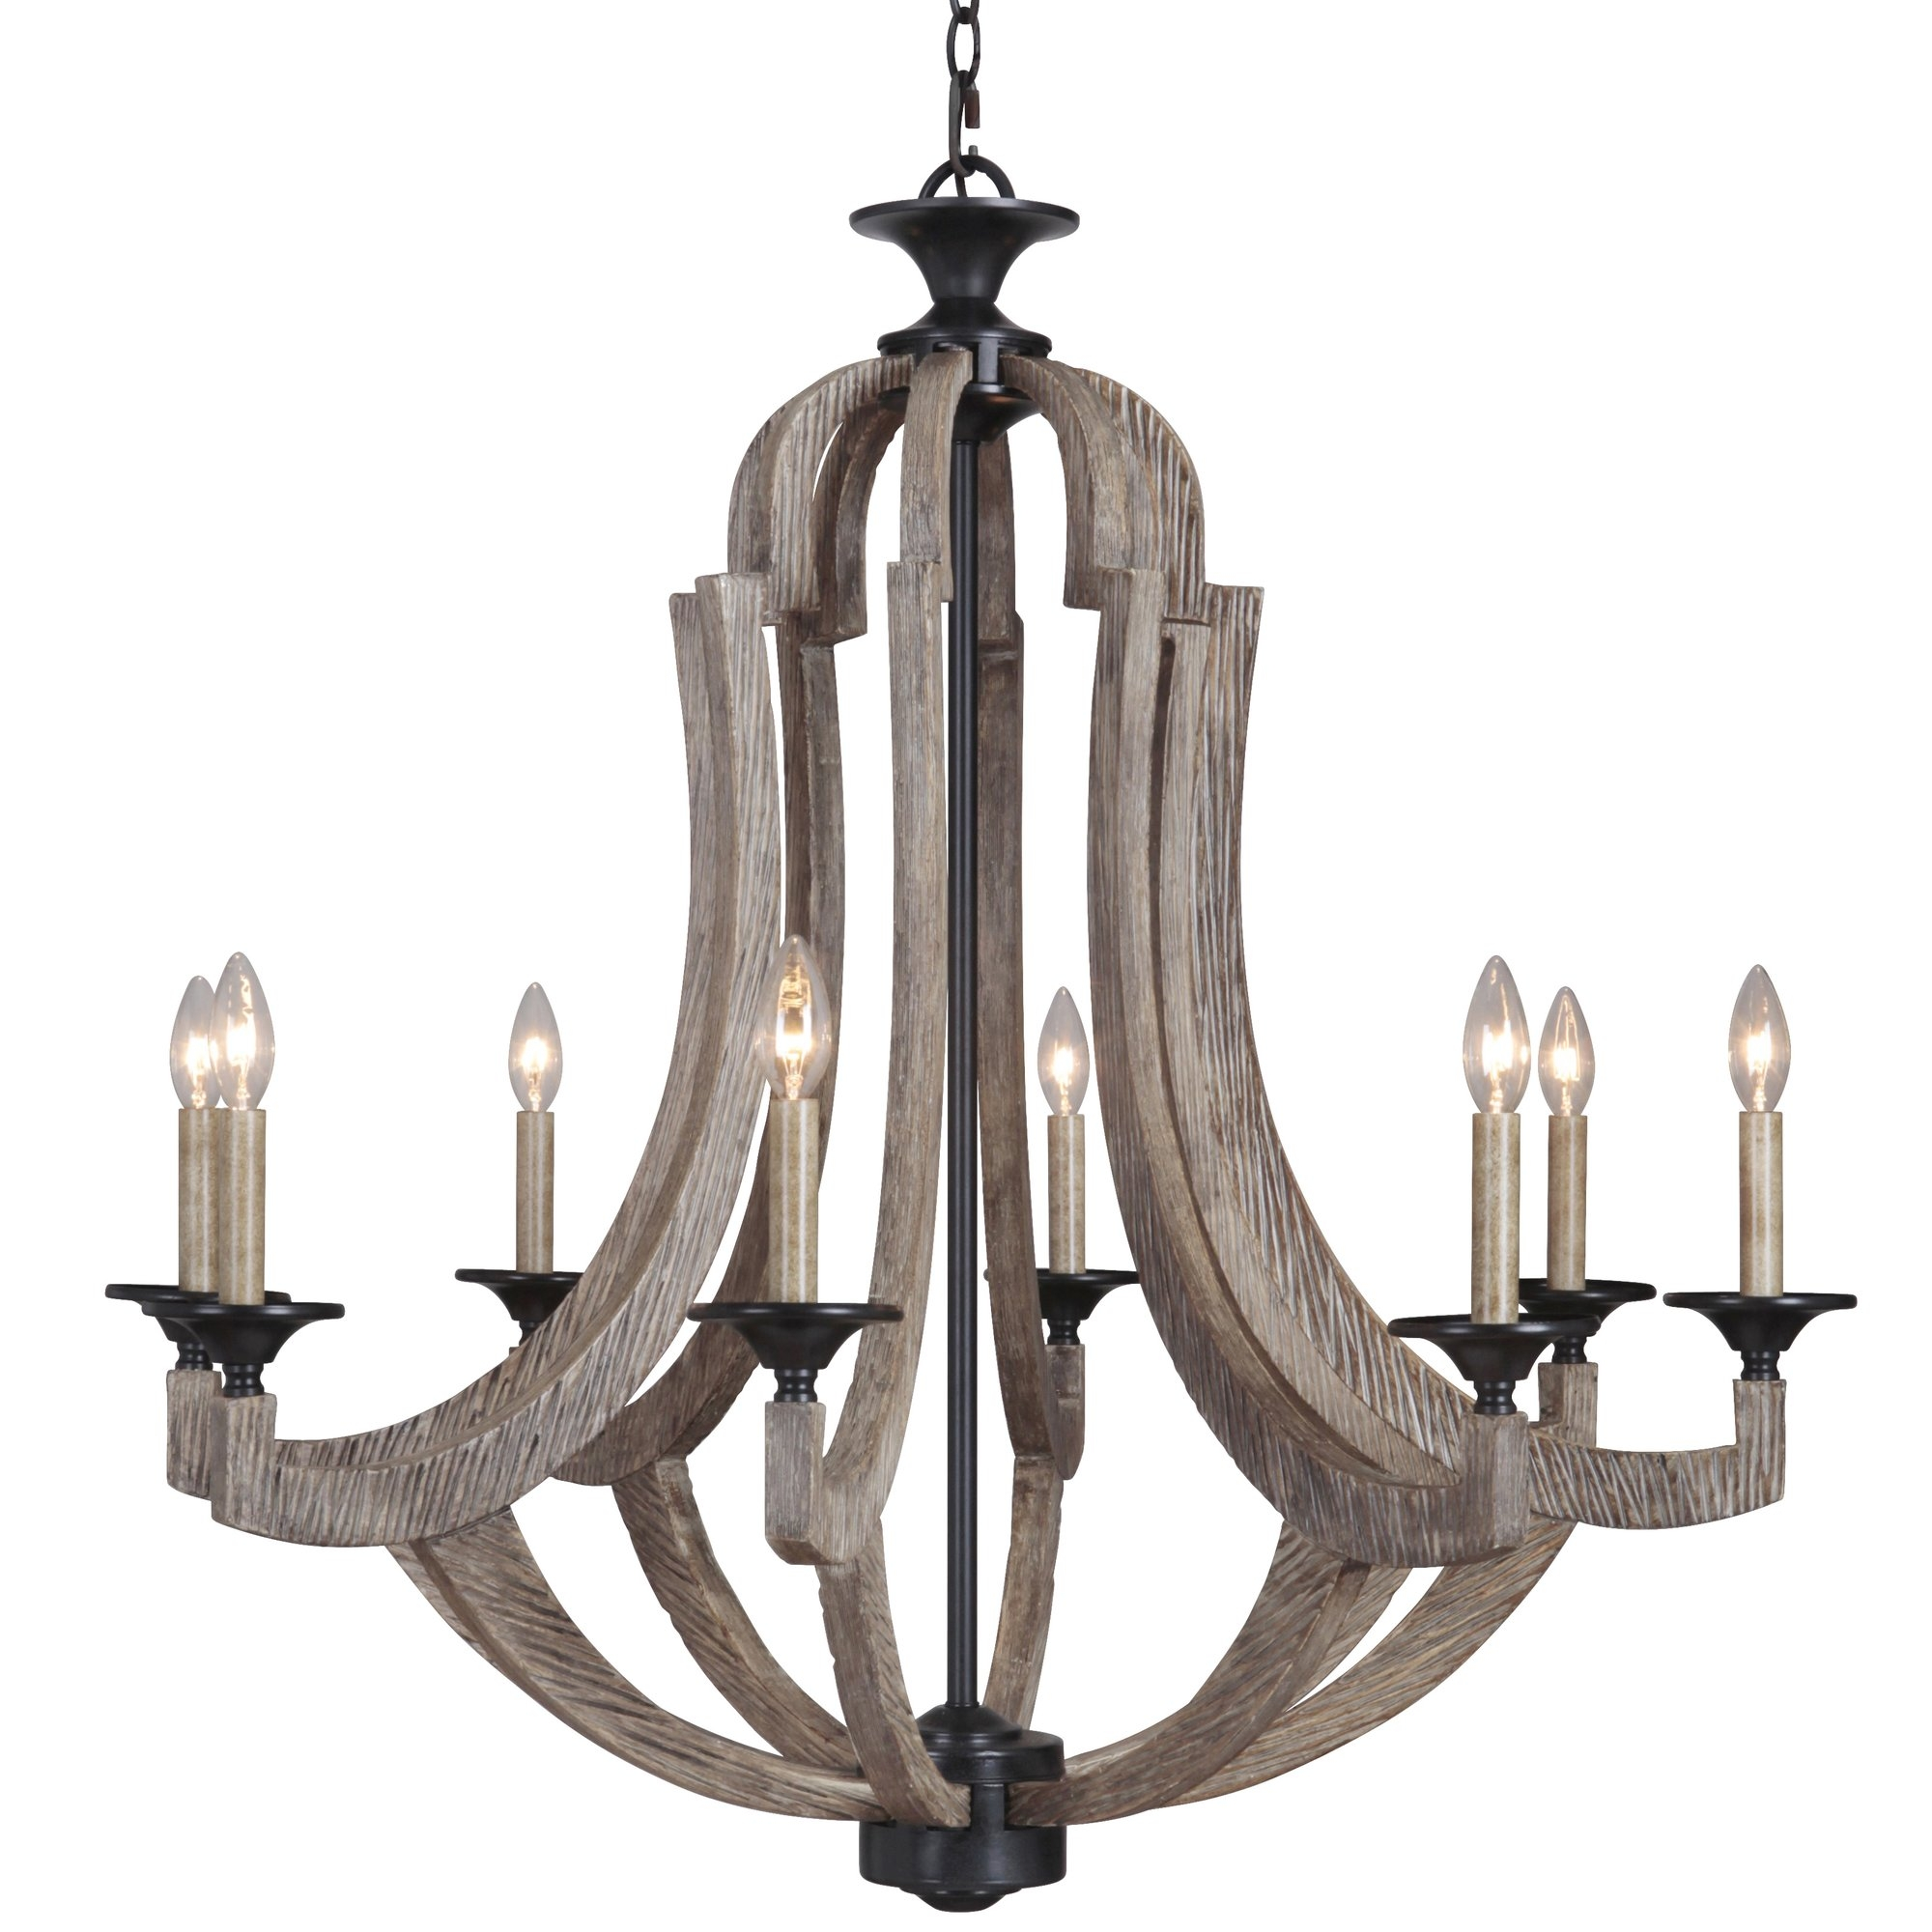 Candle Chandeliers Youll Love Wayfair Regarding Candle Light Chandelier (Image 2 of 15)